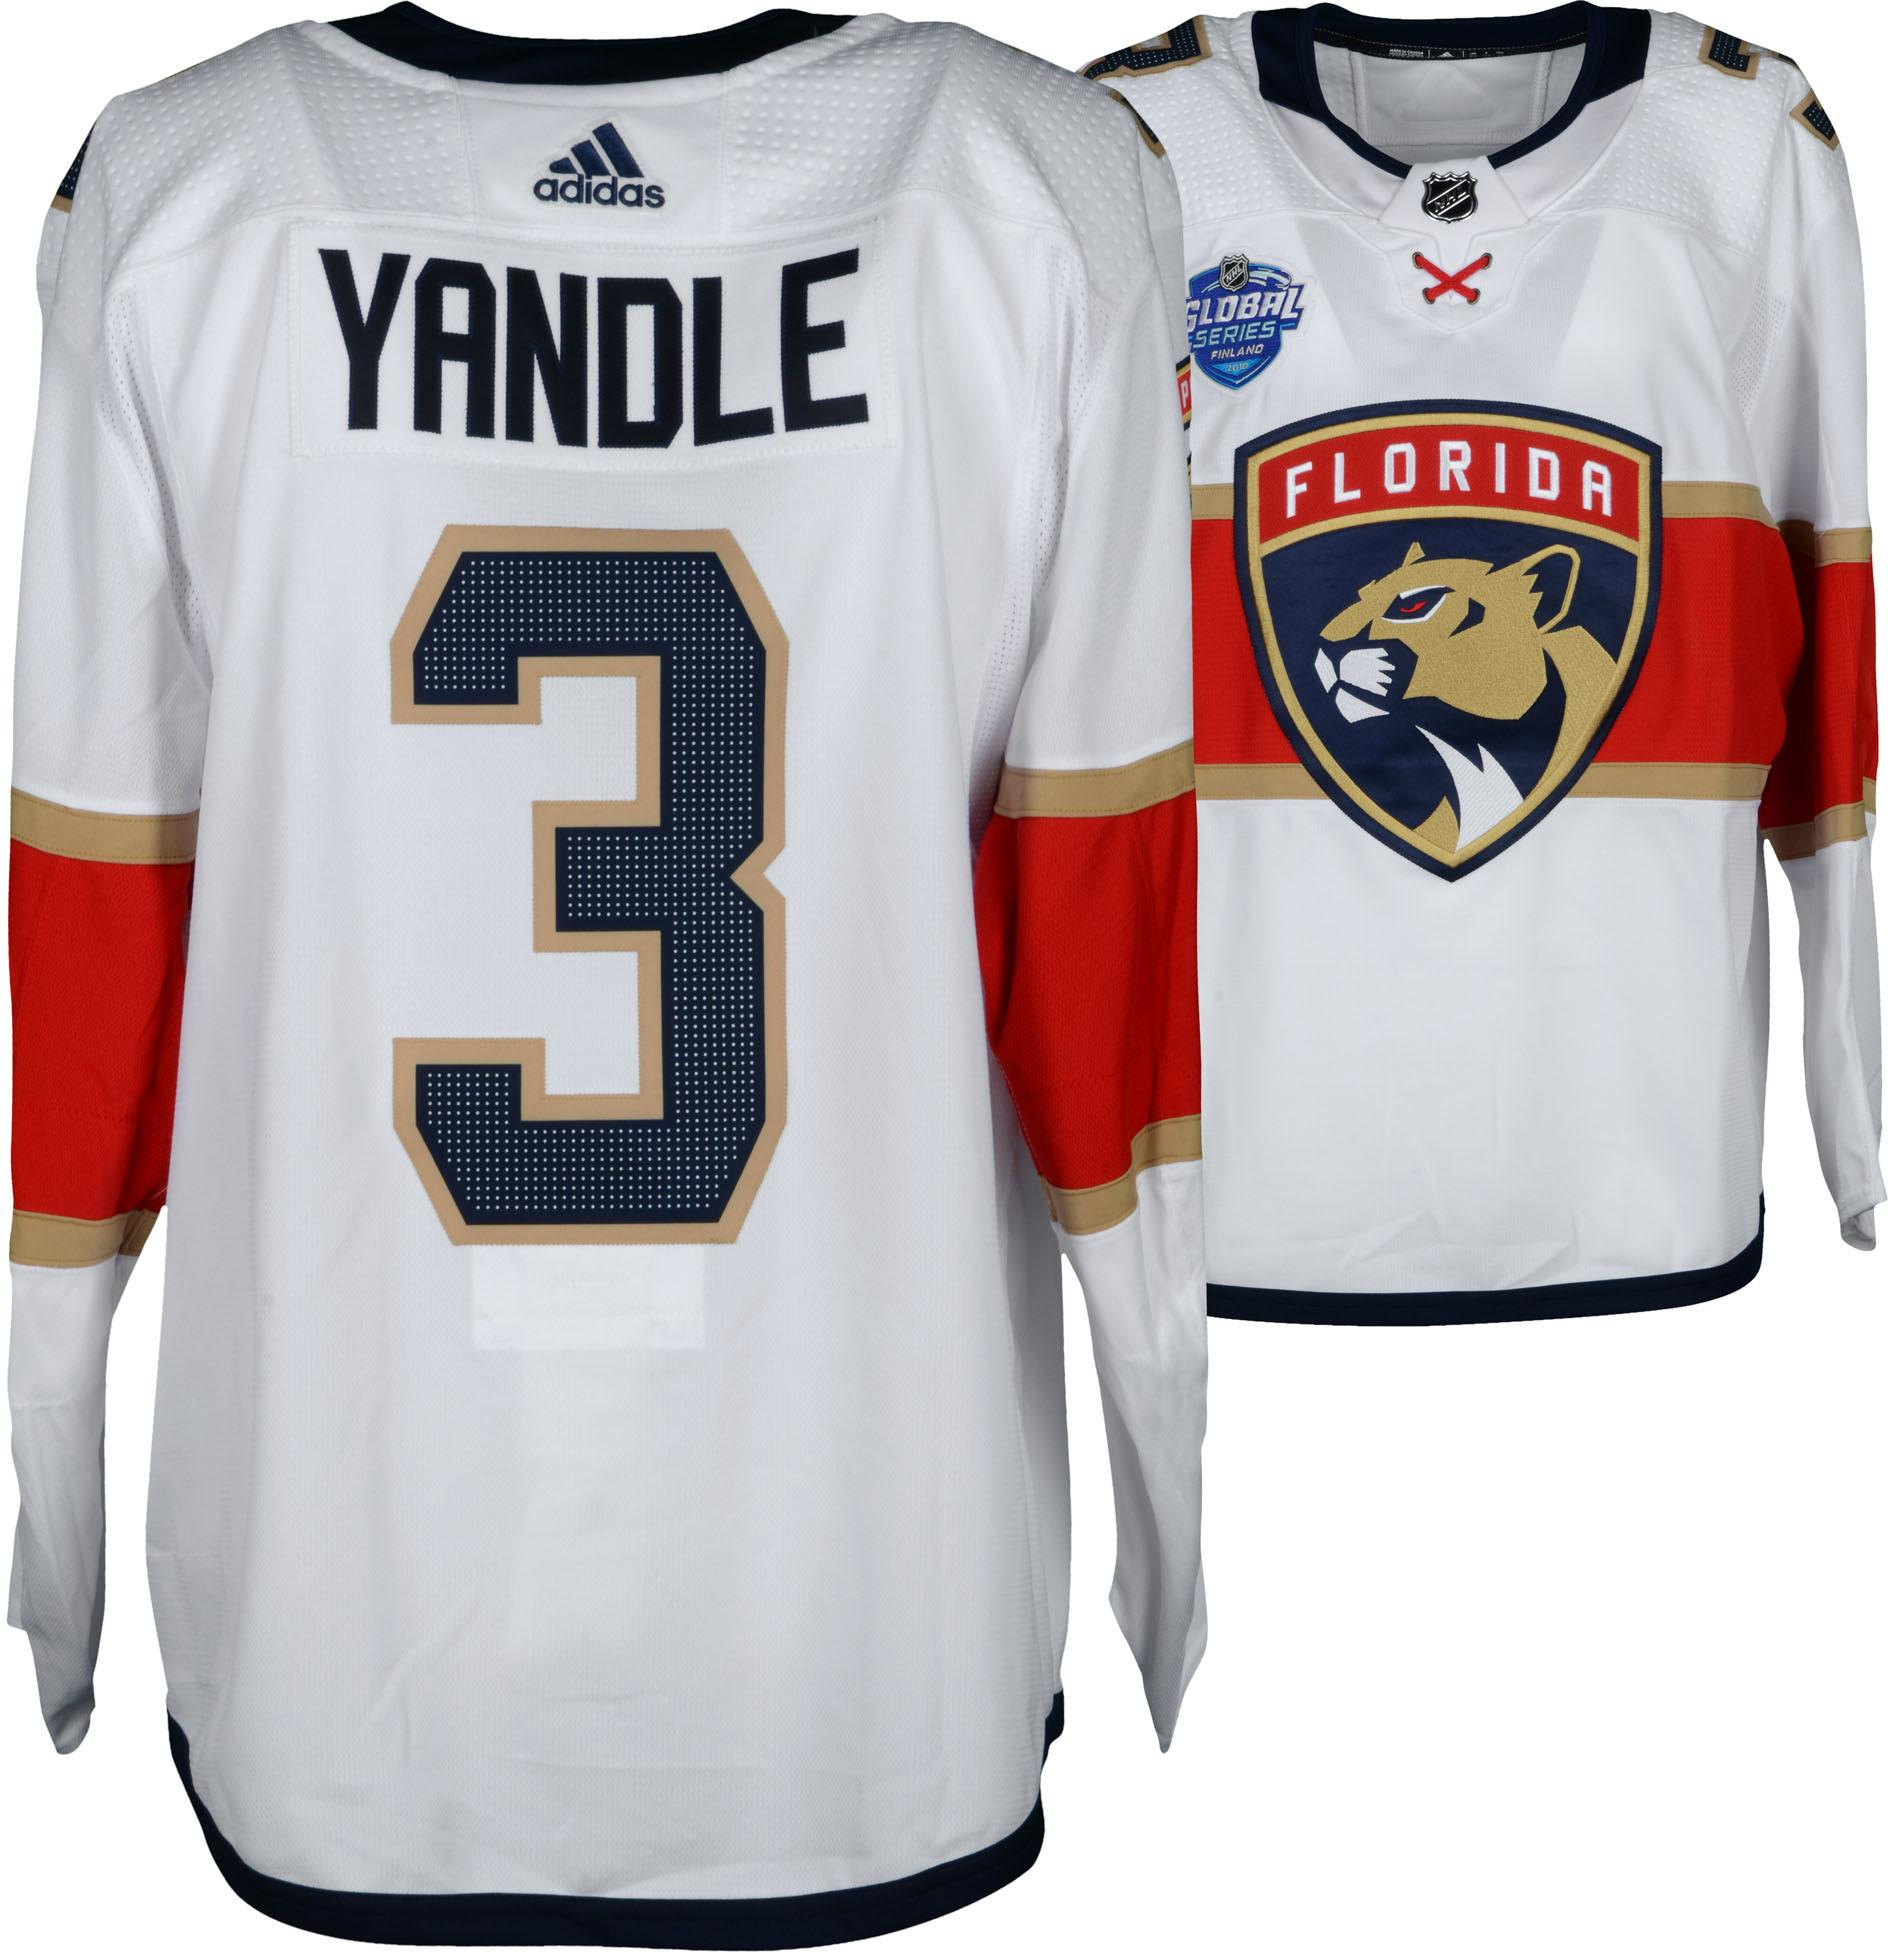 info for 3cc1a 65454 Keith Yandle Florida Panthers Game-Used #3 White Jersey from the 2018 NHL  Global Series Game vs. Winnipeg Jets on November 2, 2018 - Size 56 - ...